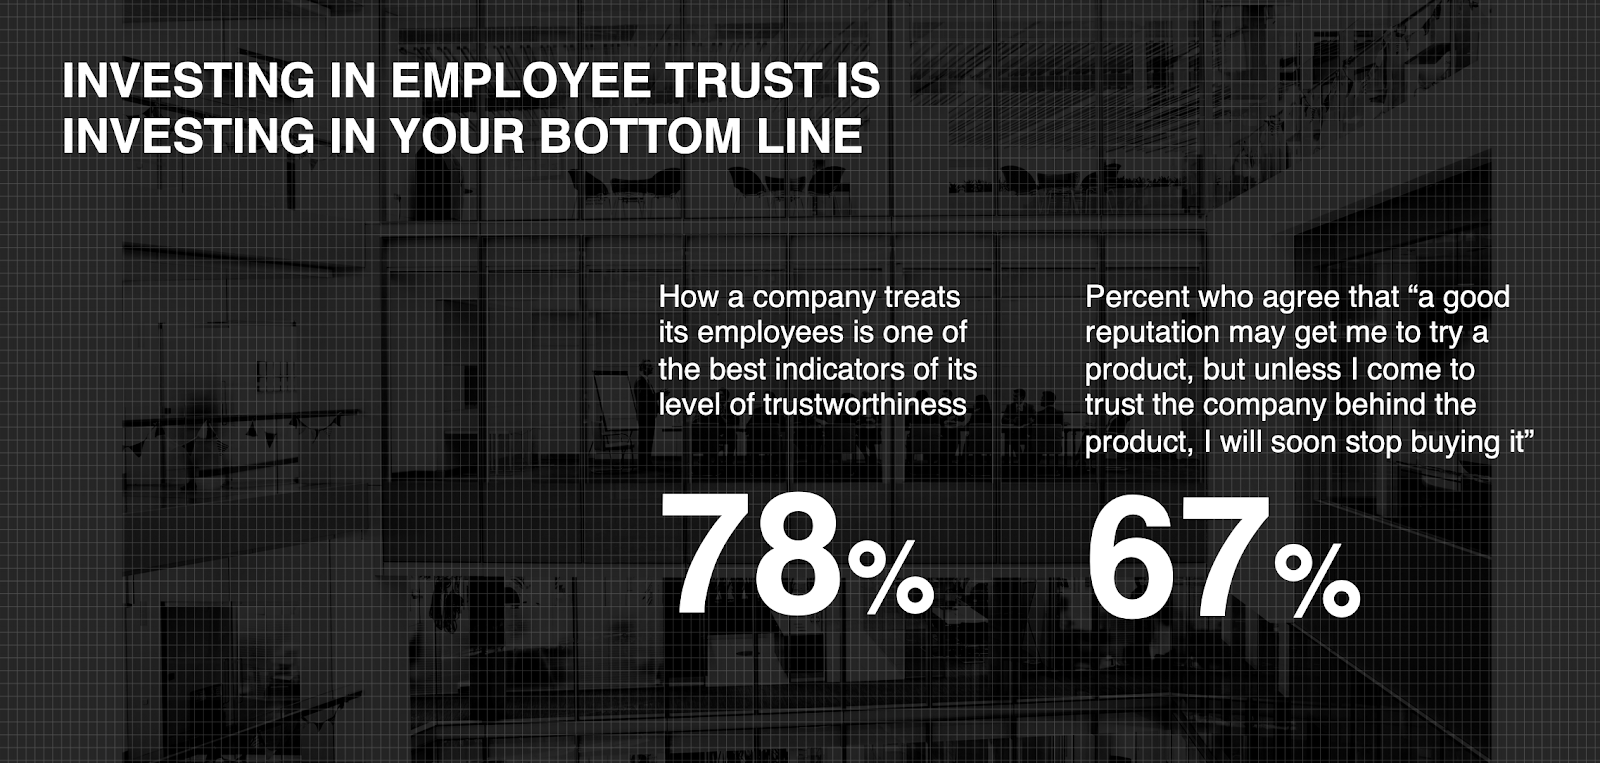 Invest in Employee Trust